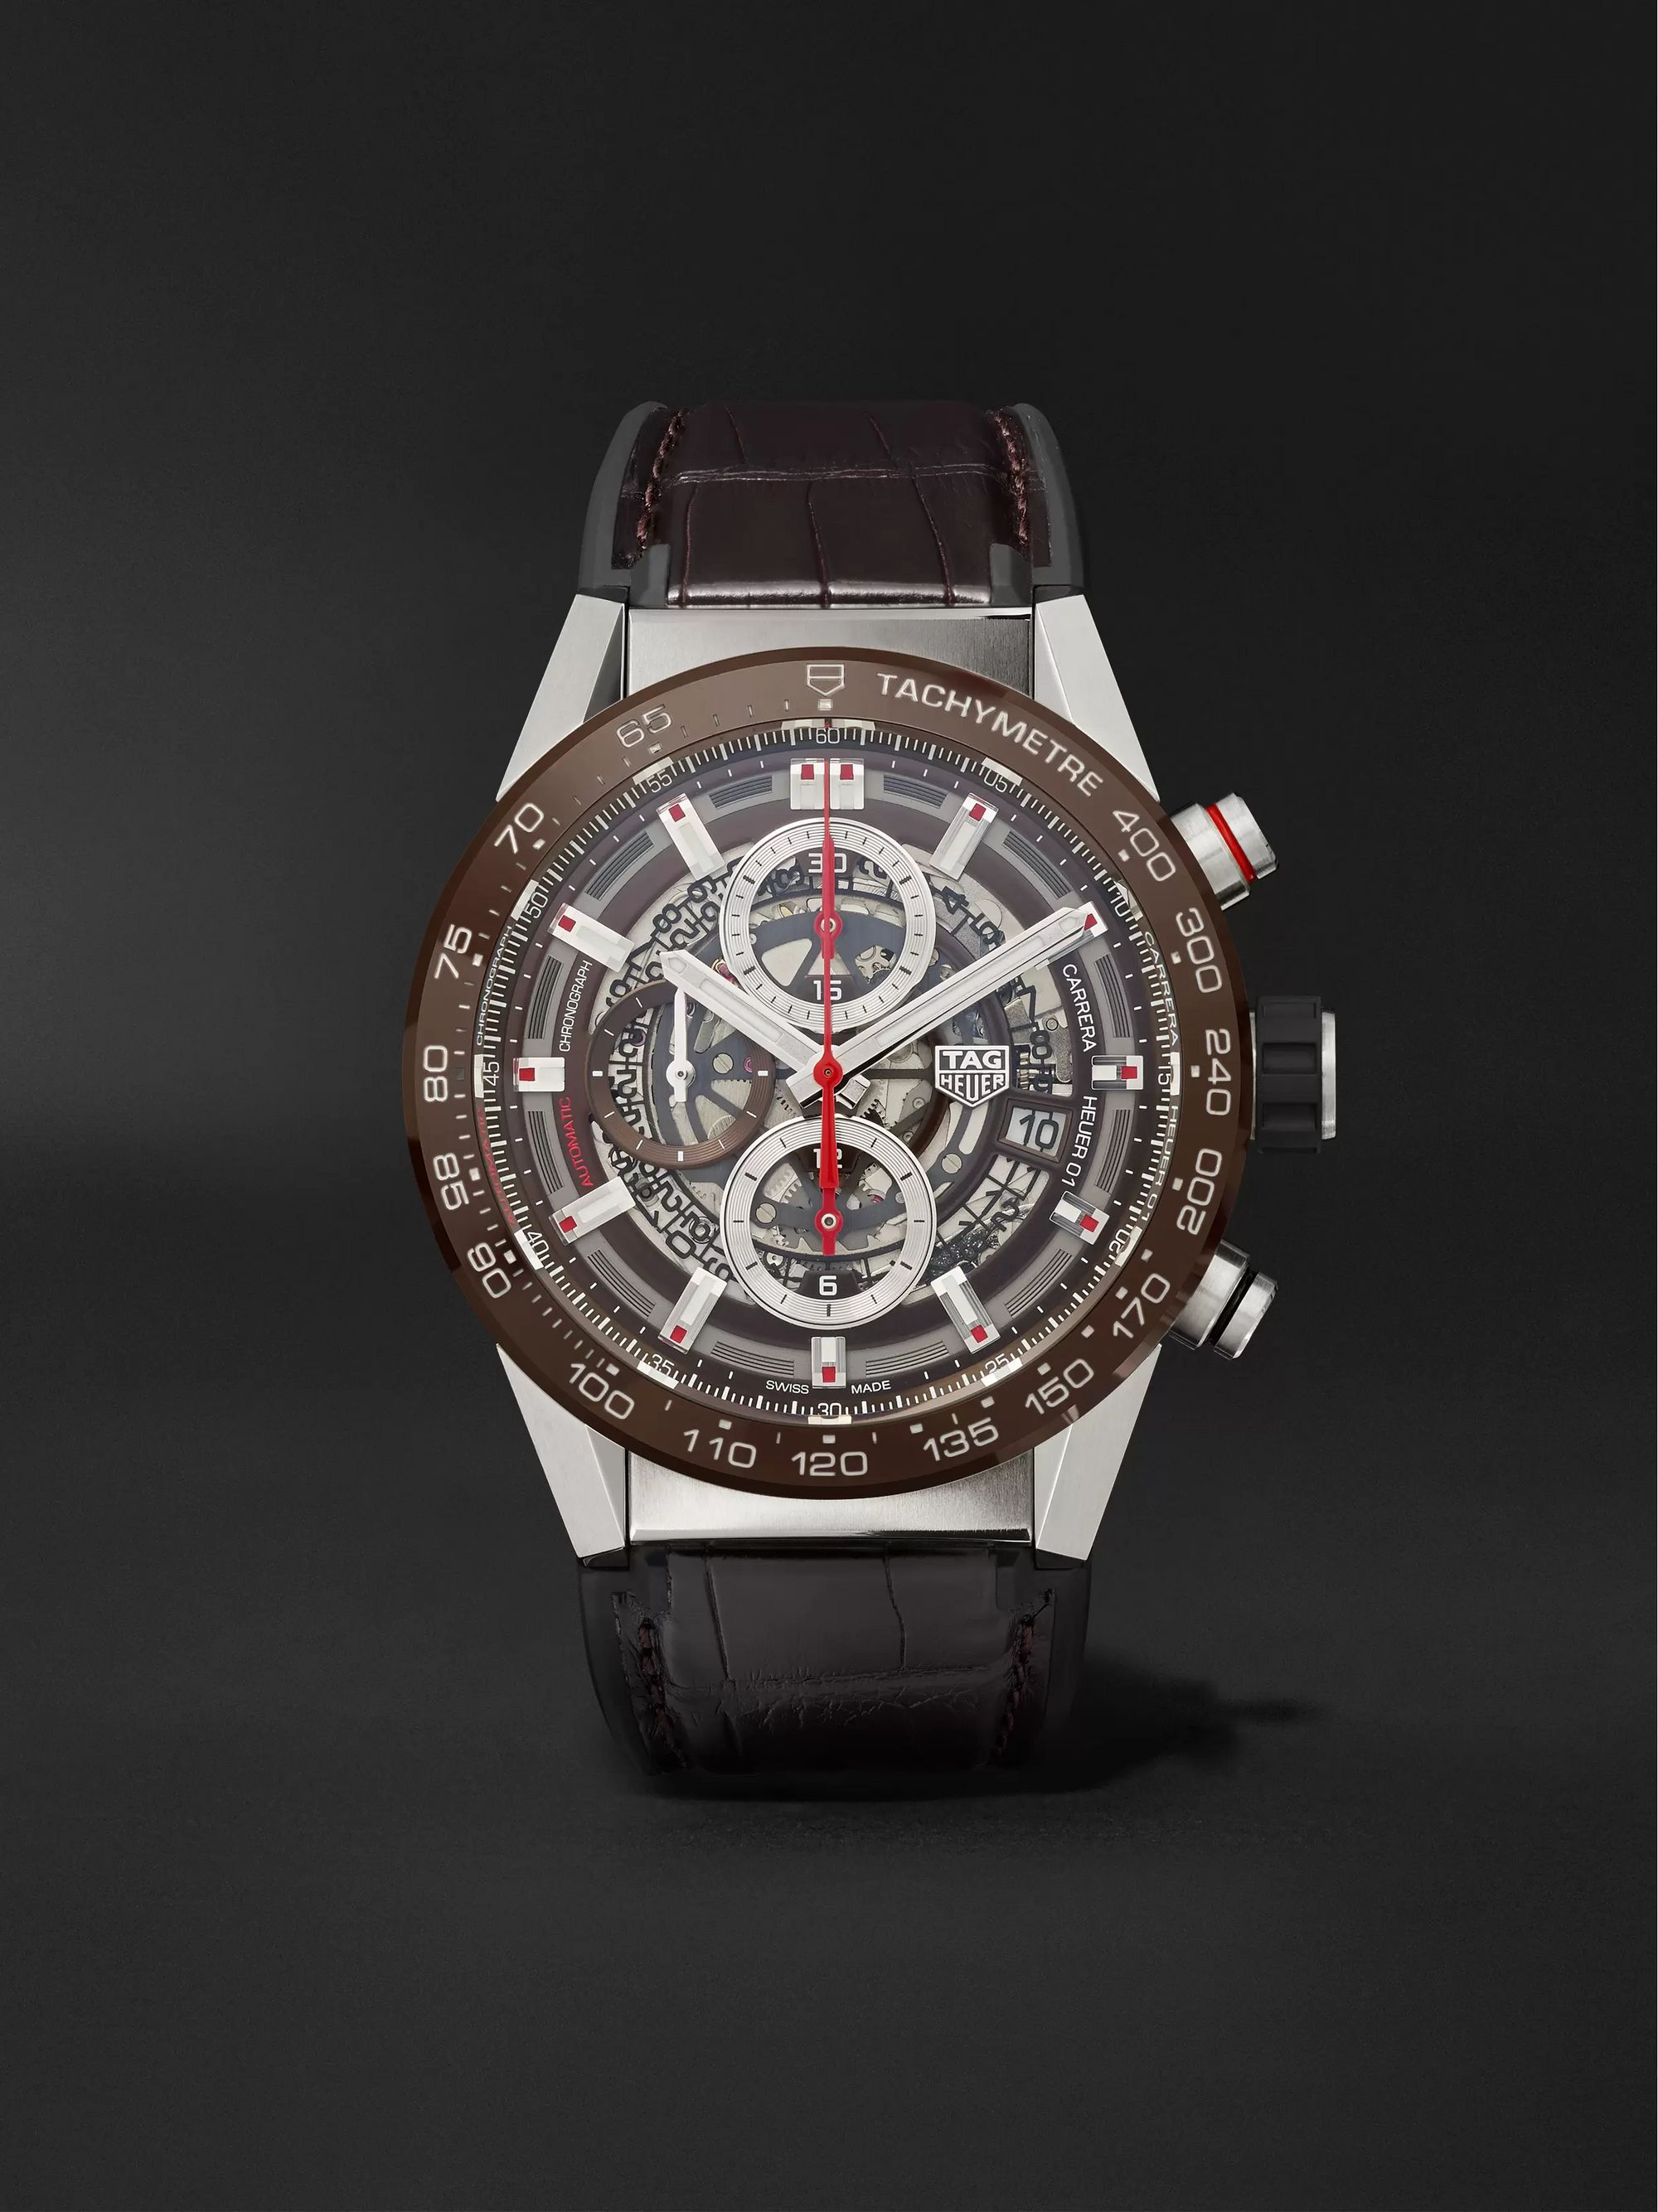 TAG Heuer Carrera Automatic Chronograph 43mm Stainless Steel, Ceramic and Alligator Watch, Ref. No. CAR201U.FC6405